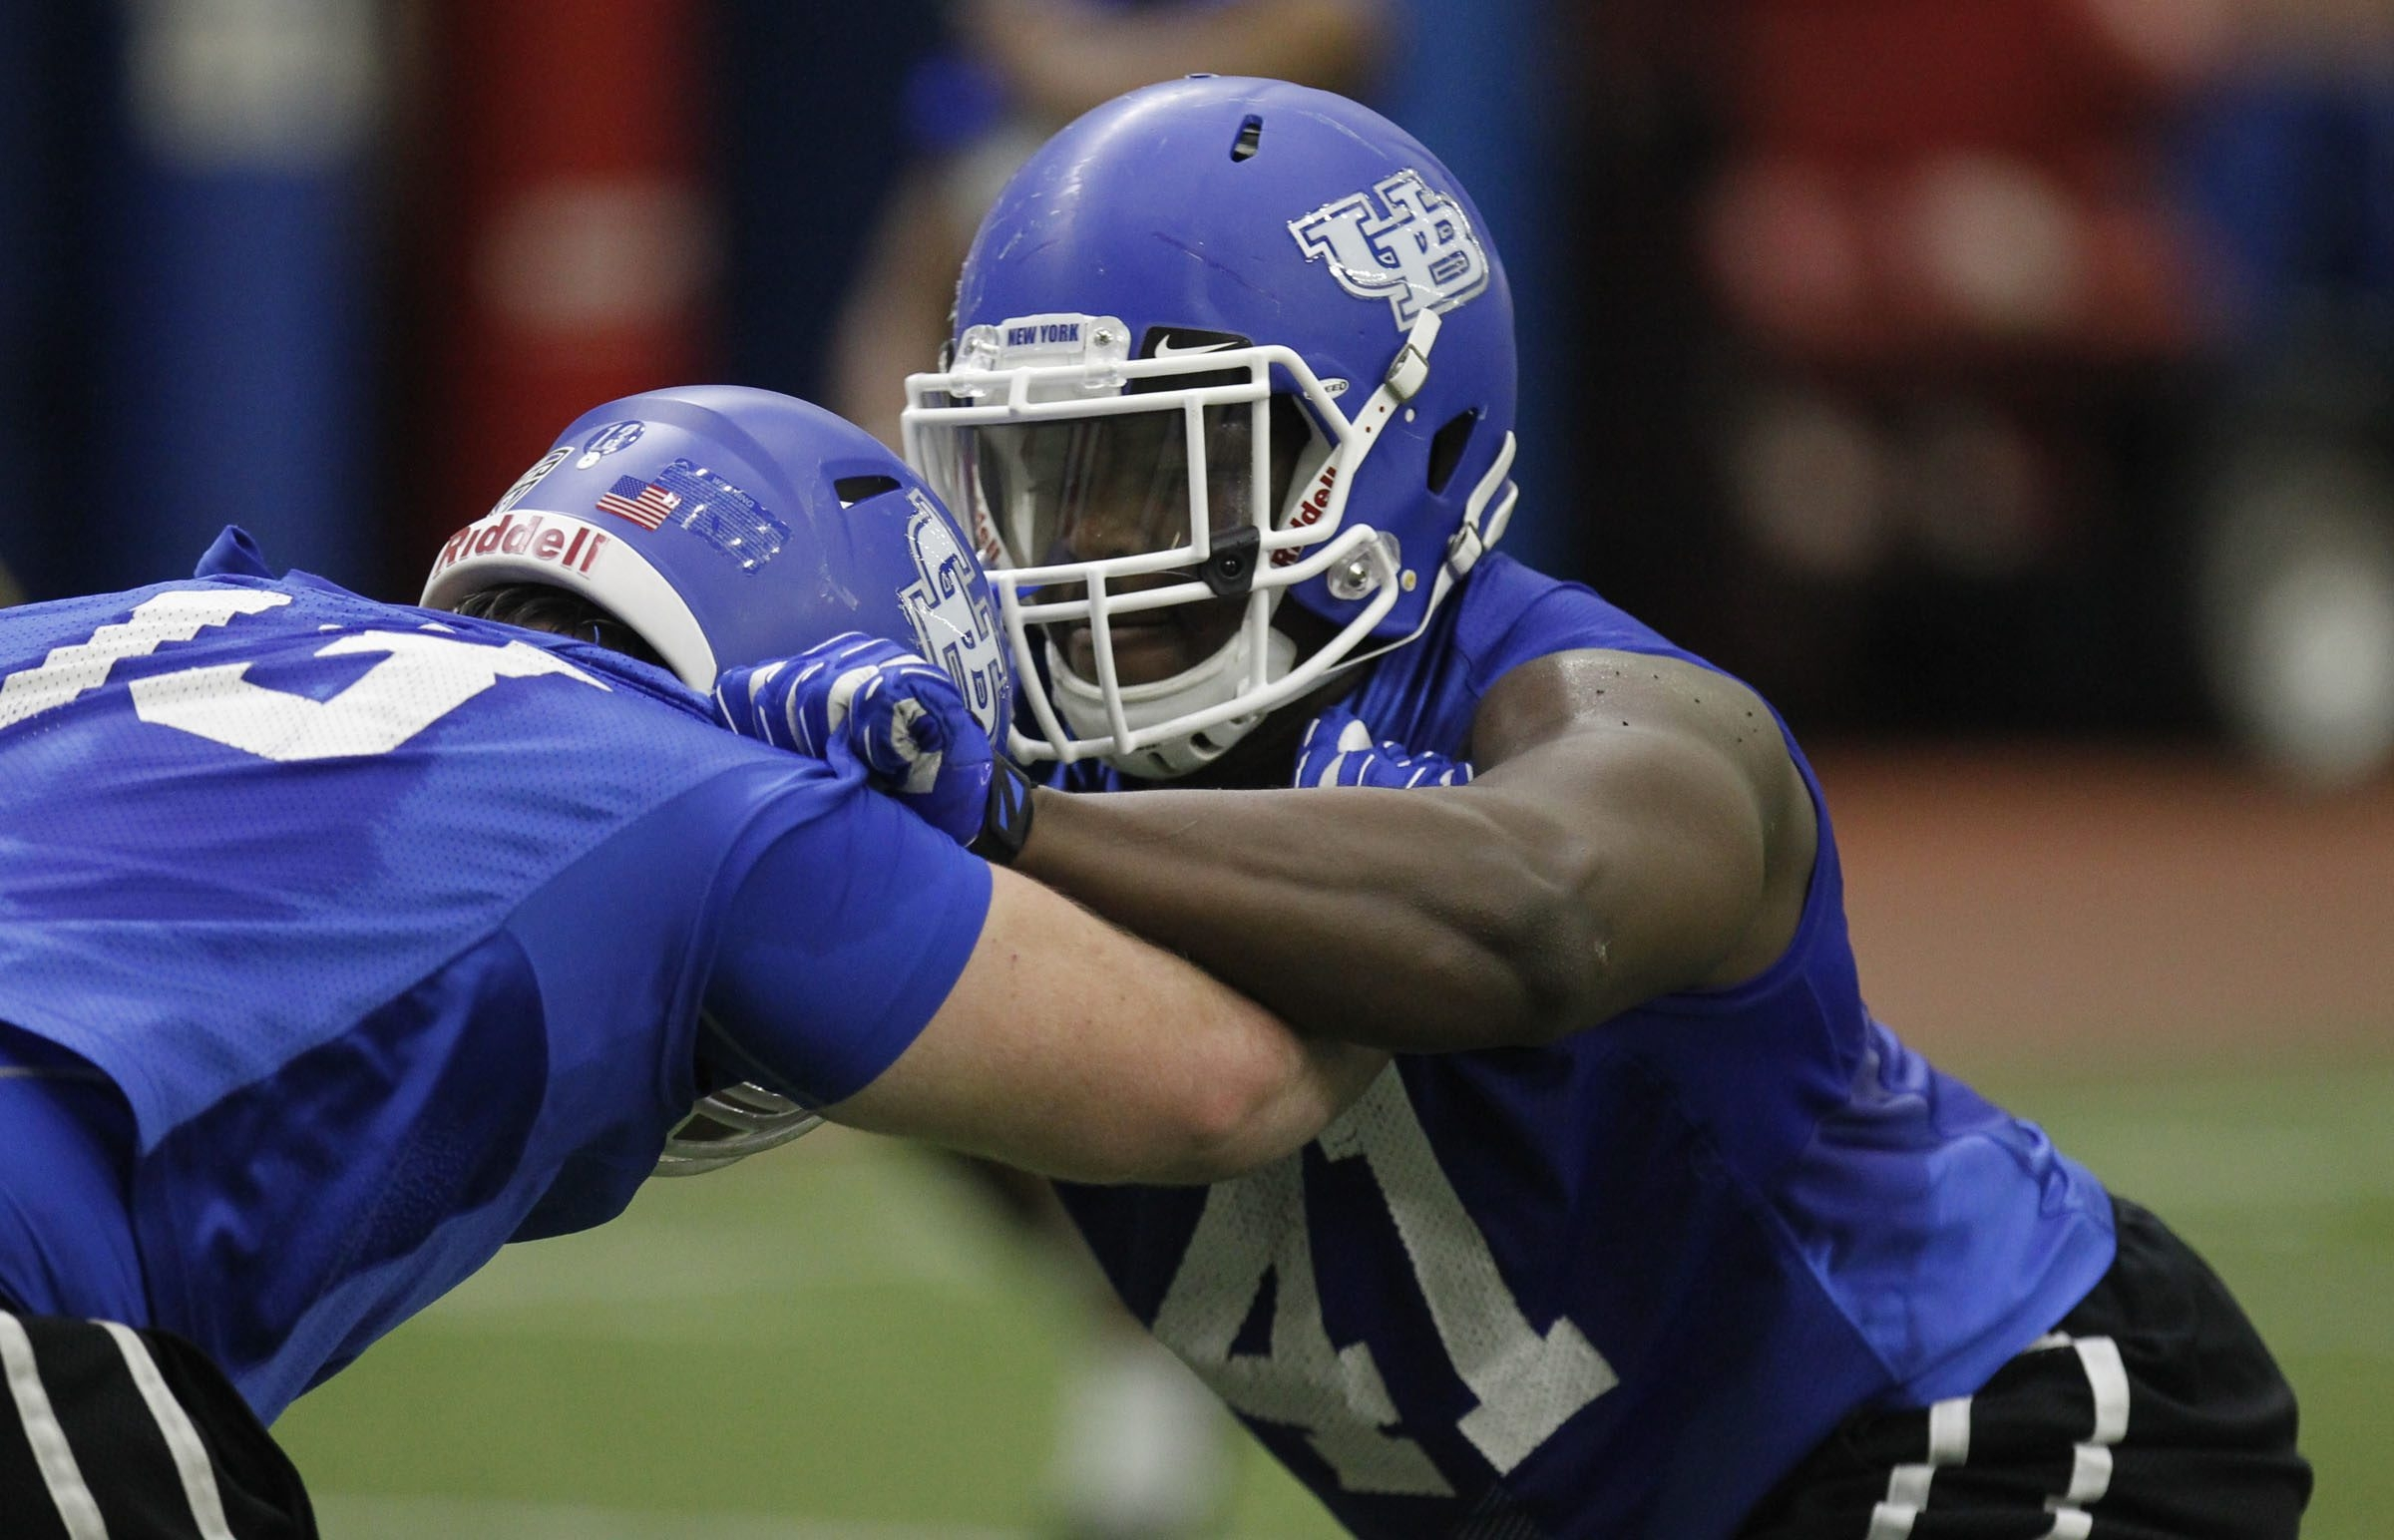 University at Buffalo football player Solomon Jackson during spring practice at the ADPRO Sports Training Center on Friday, March 27, 2015.(Harry Scull Jr./Buffalo News)